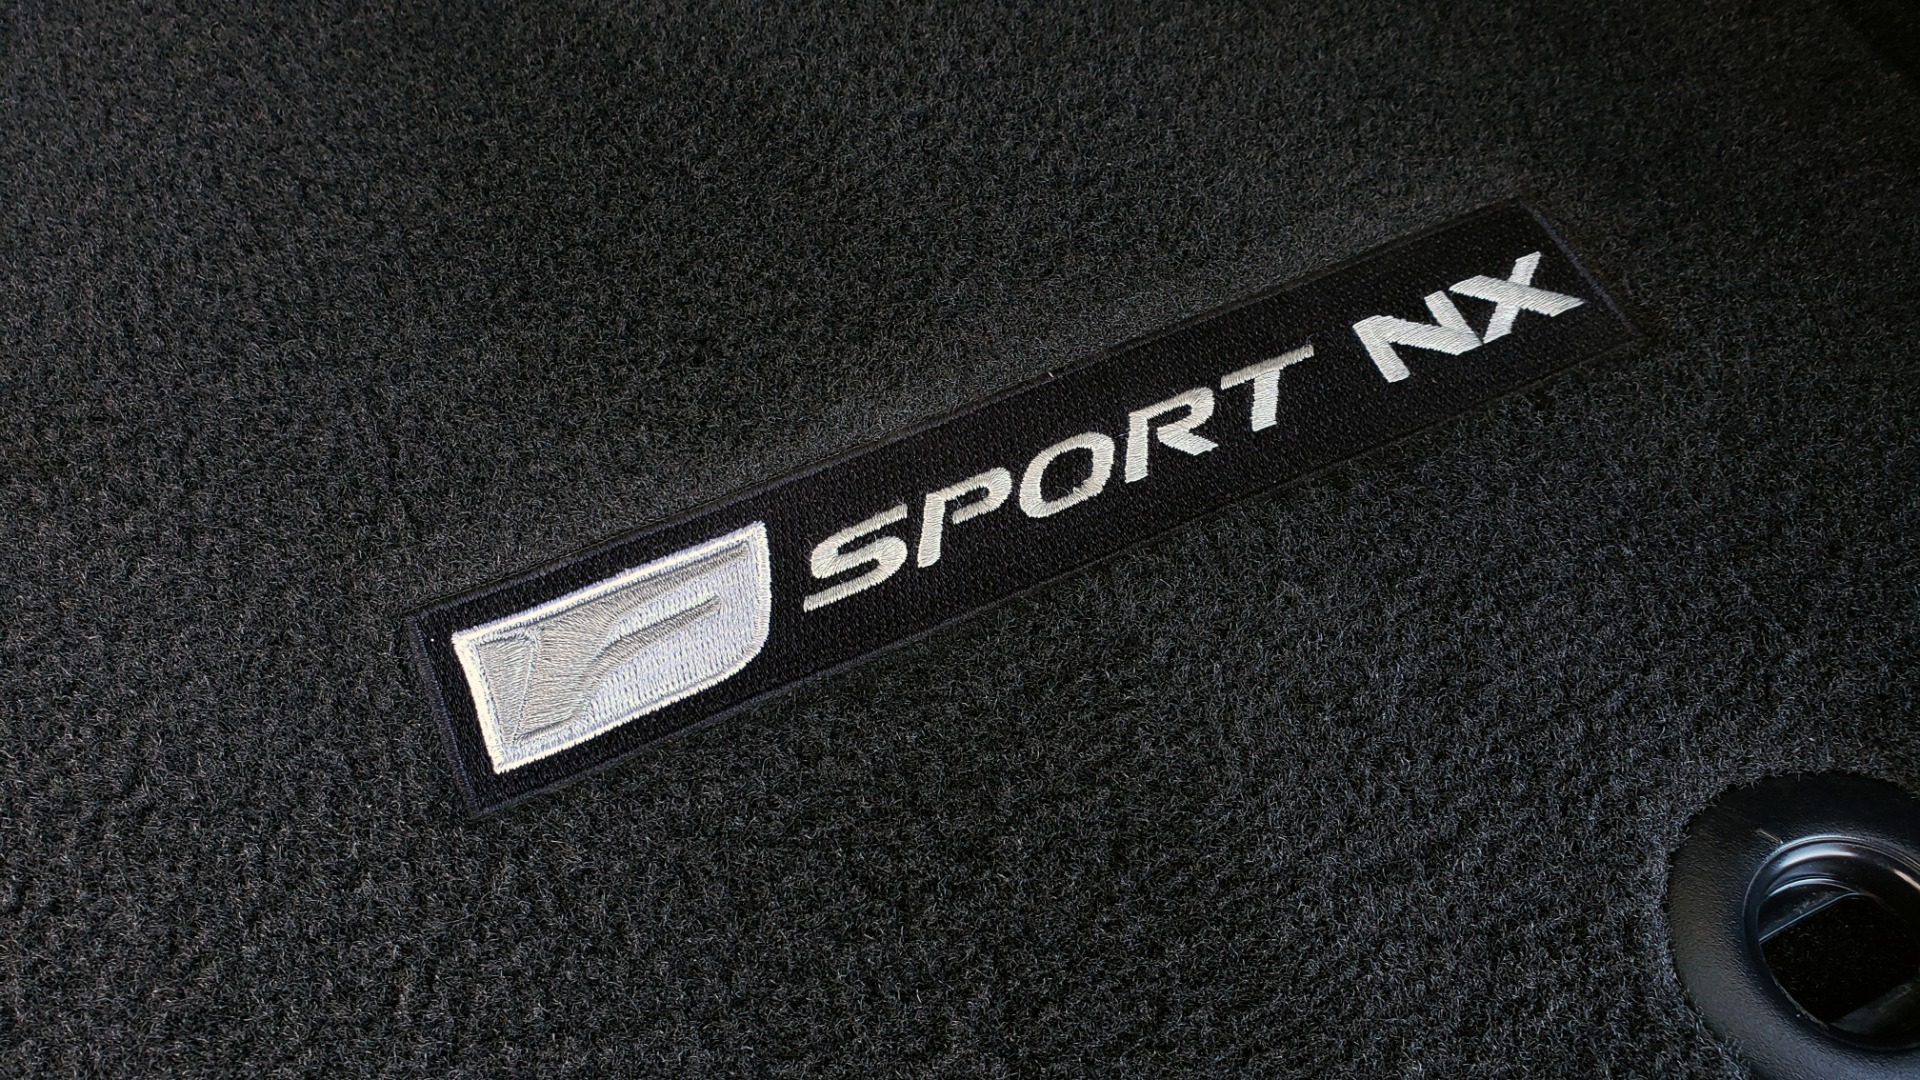 Used 2019 Lexus NX 300 F-SPORT / 2.0L TURBO / LEATHER / 18IN WHEELS / REARVIEW for sale Sold at Formula Imports in Charlotte NC 28227 18